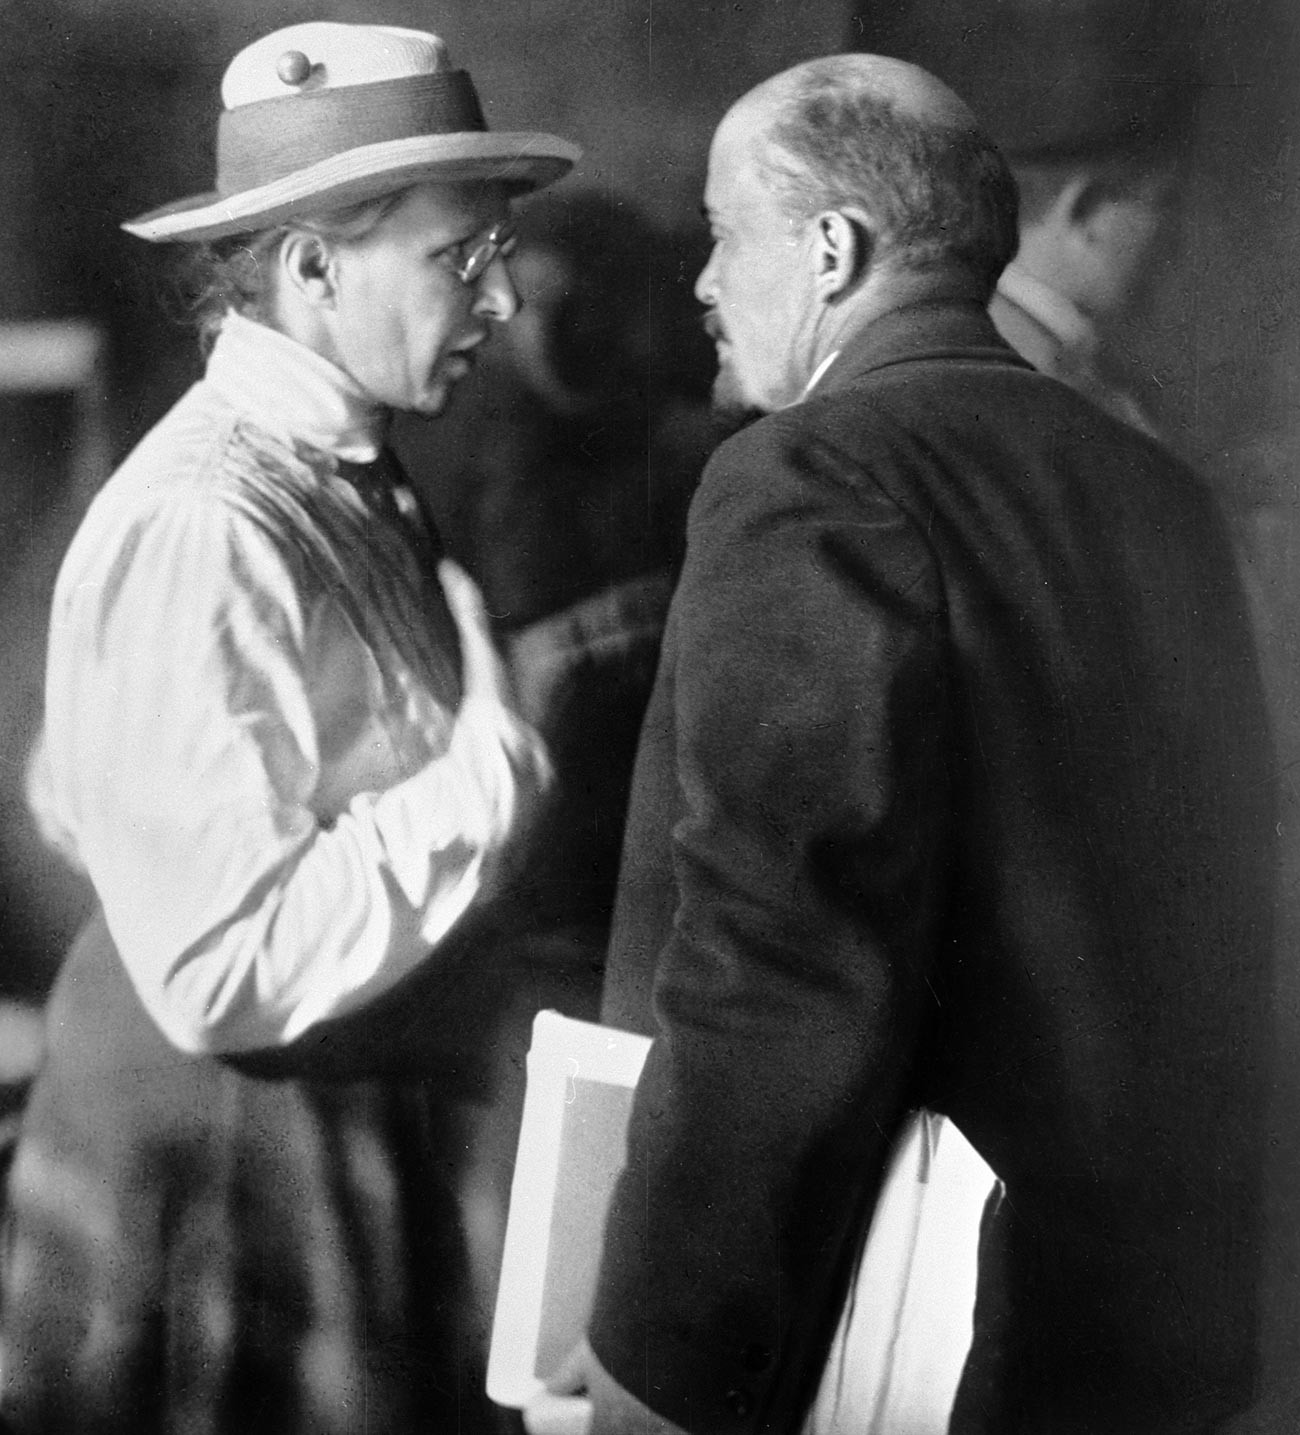 Elena Stasova talks to Vladimir Lenin during the 2nd Communist International (Comintern) Congress, Moscow, 1920.